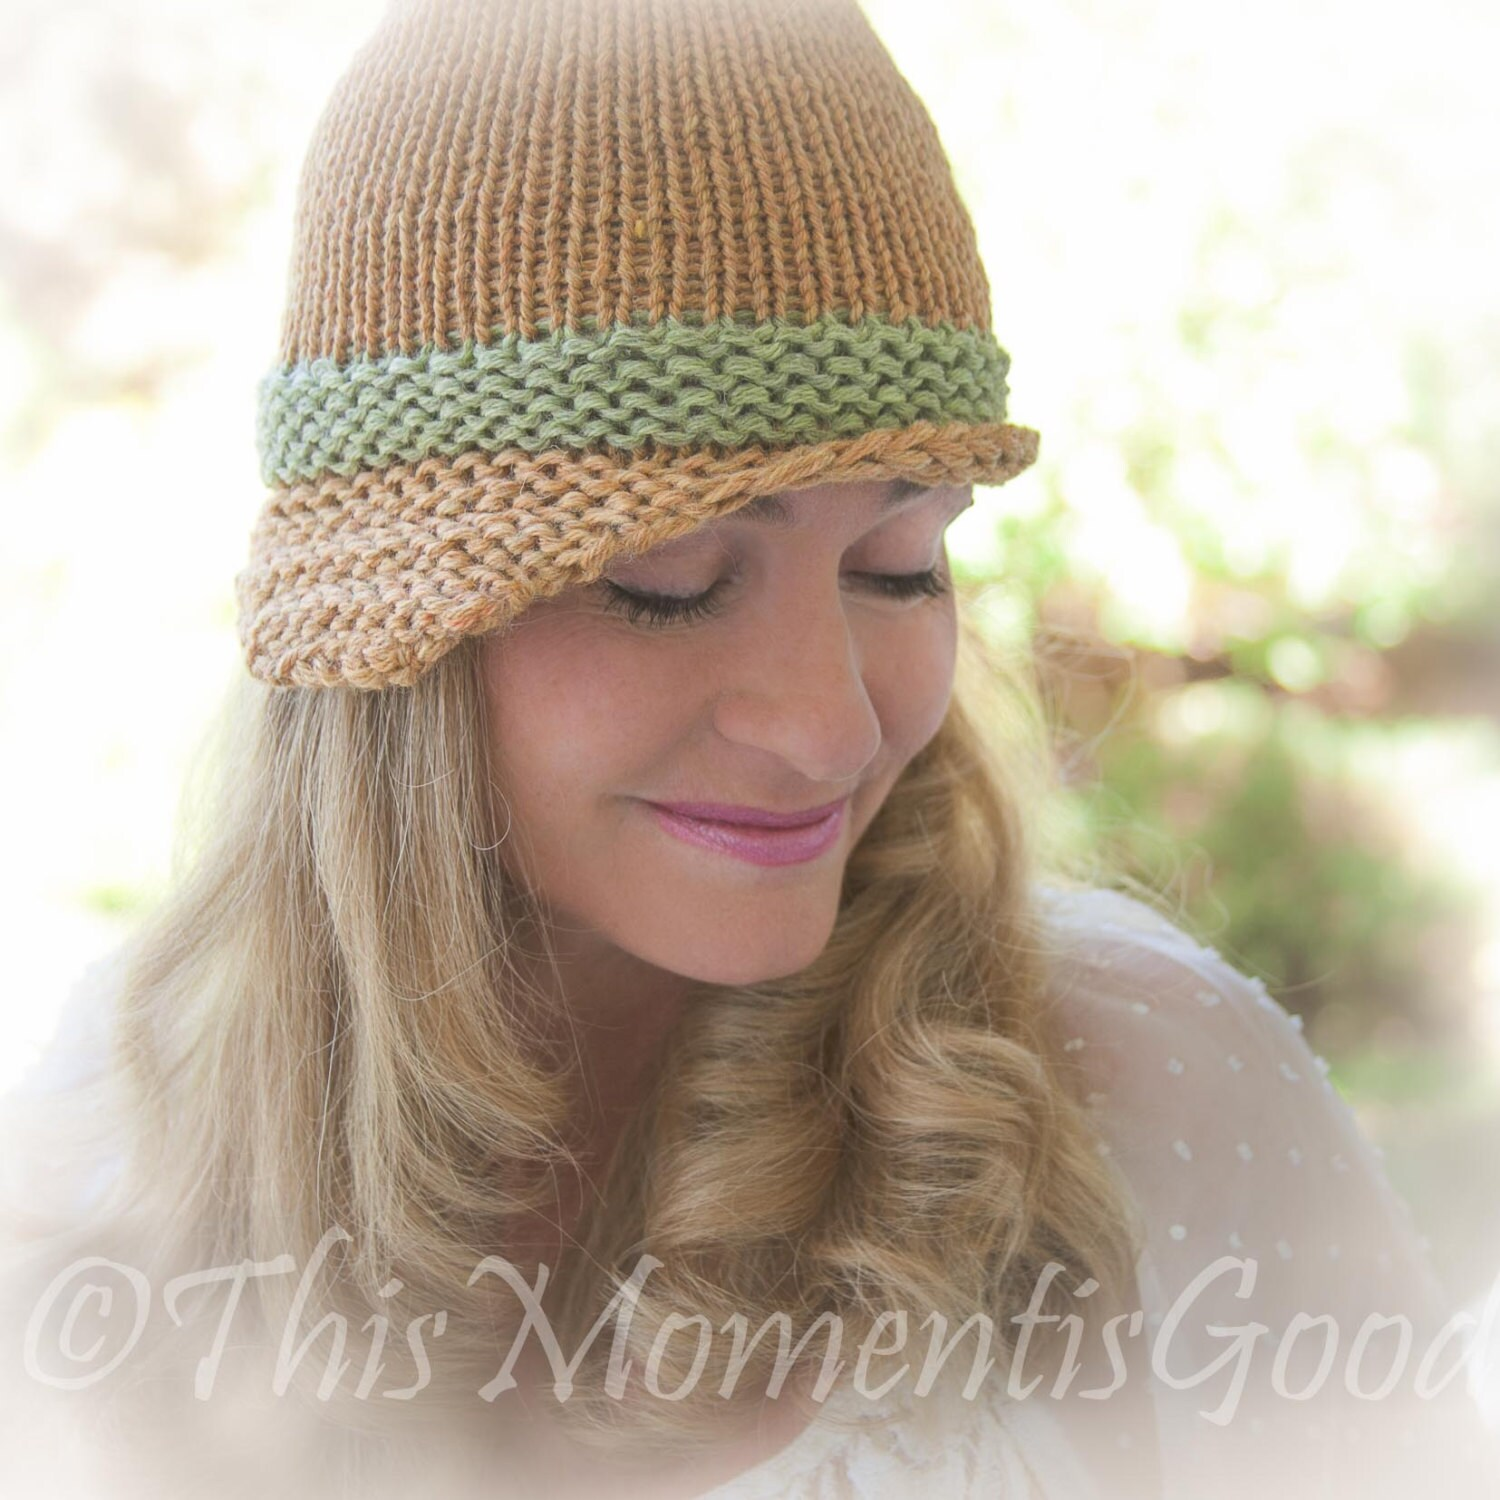 Loom Knit Folded Brim Cloche Hat PATTERN. Vintage Style Hat